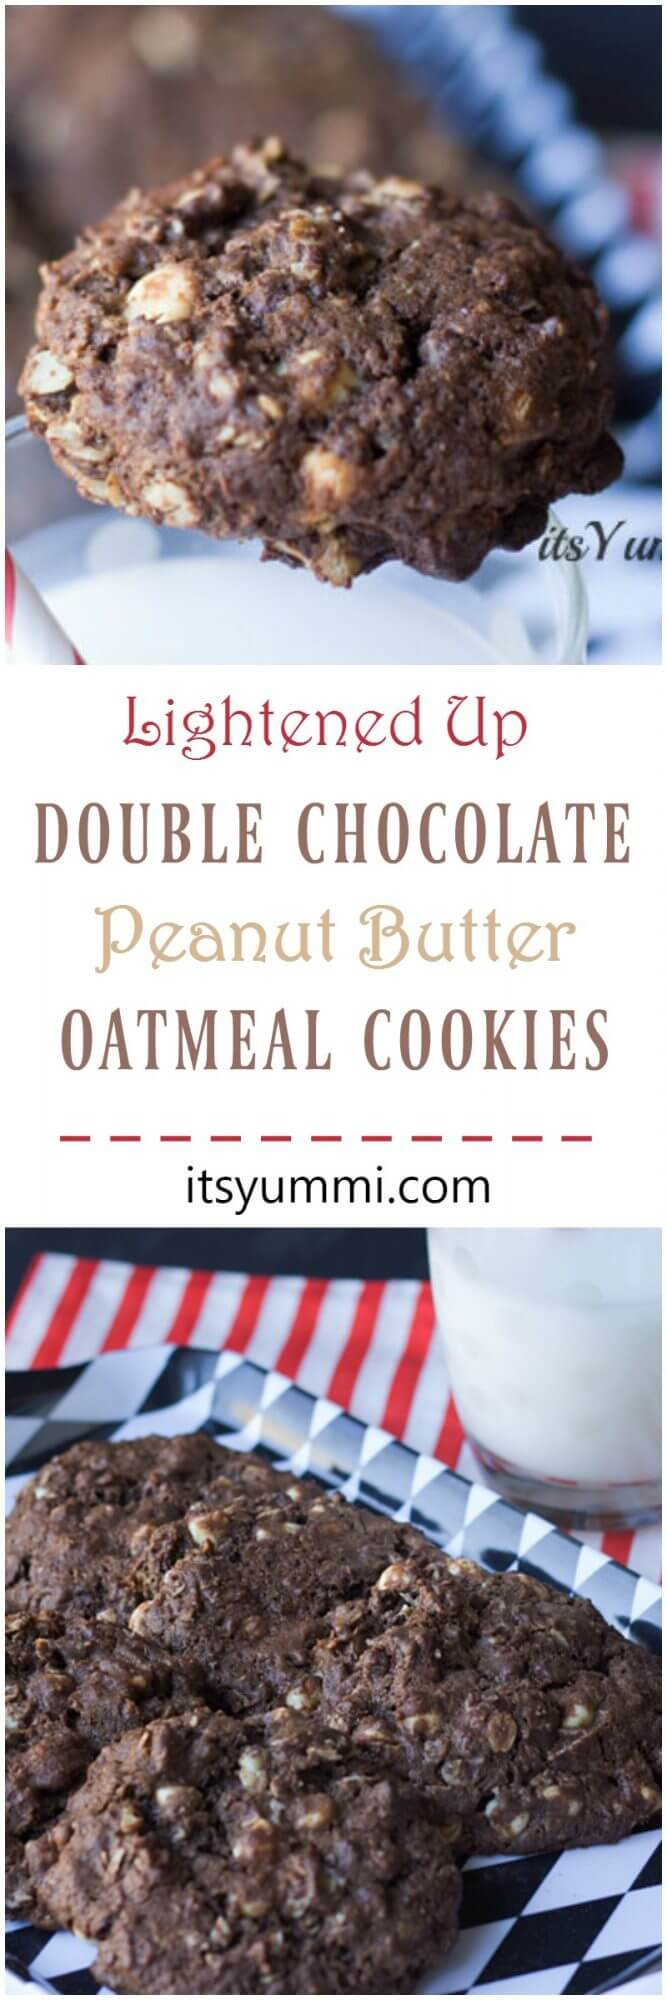 Lightened Up Double Chocolate Peanut Butter Oatmeal Cookies - Lower in calories and carbs, but with just as much flavor! Recipe on itsyummi.com